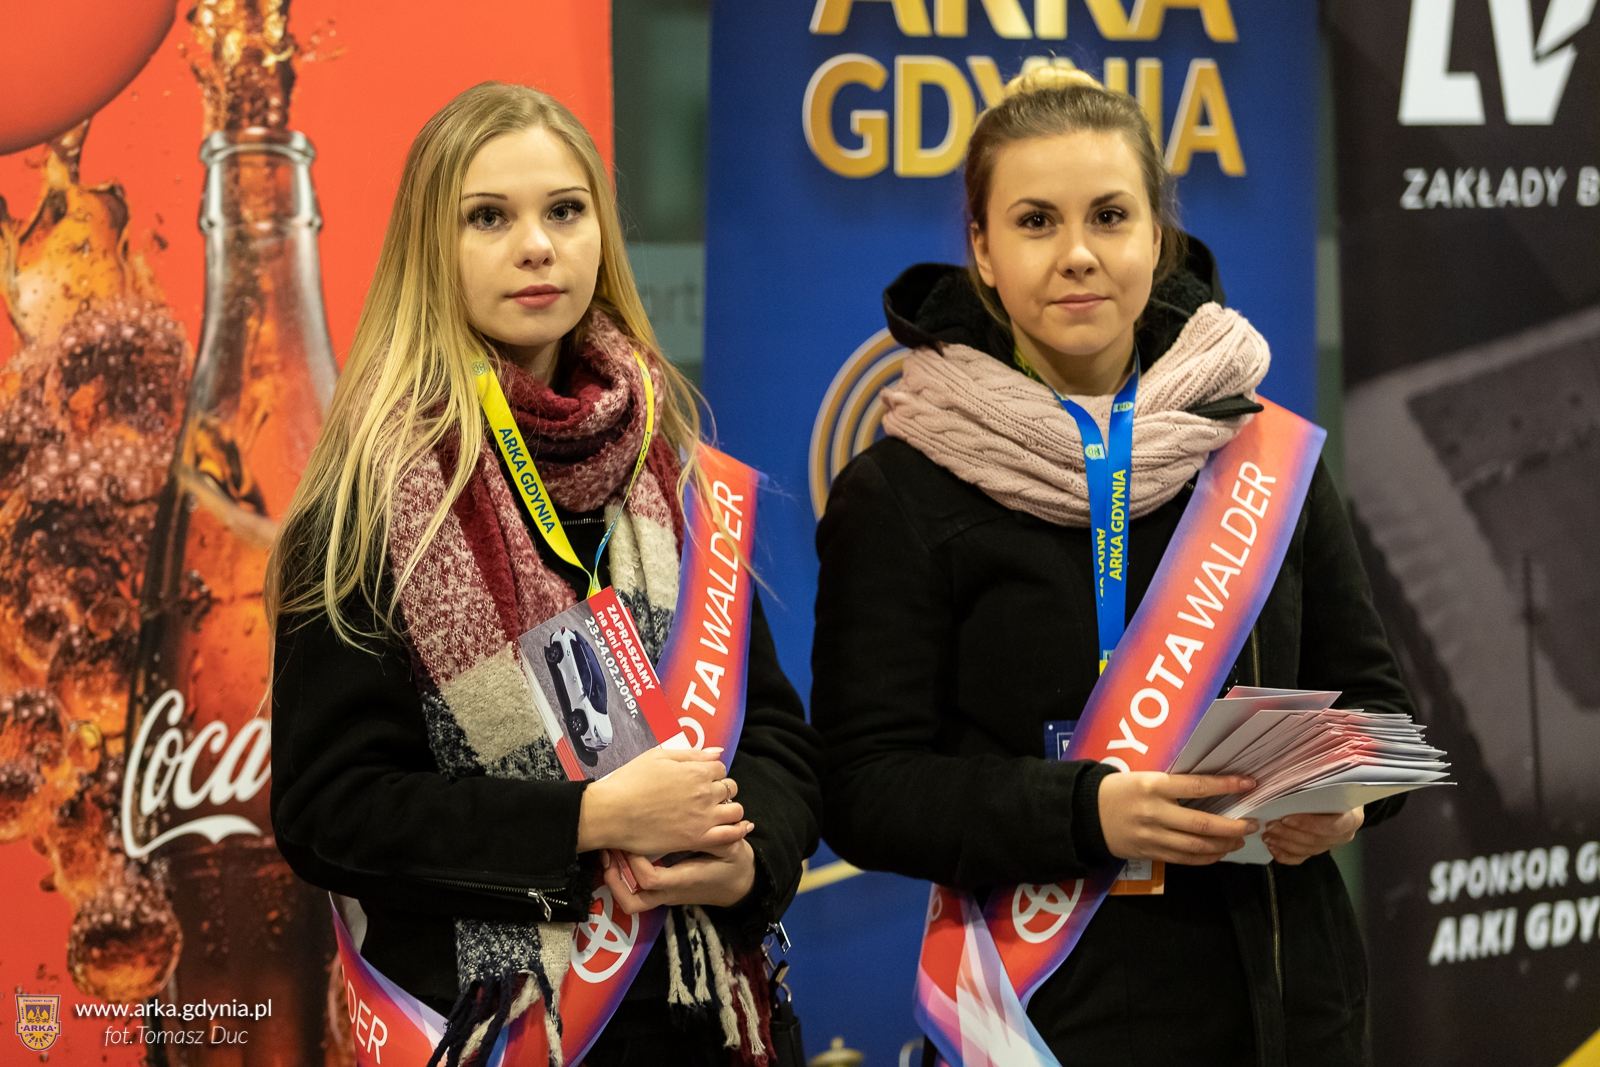 http://arka.gdynia.pl/images/galeria_zdjecie/big/04-190222-IMG_1861-a_b8533aed277400aa94fe12090ebdae04.jpg